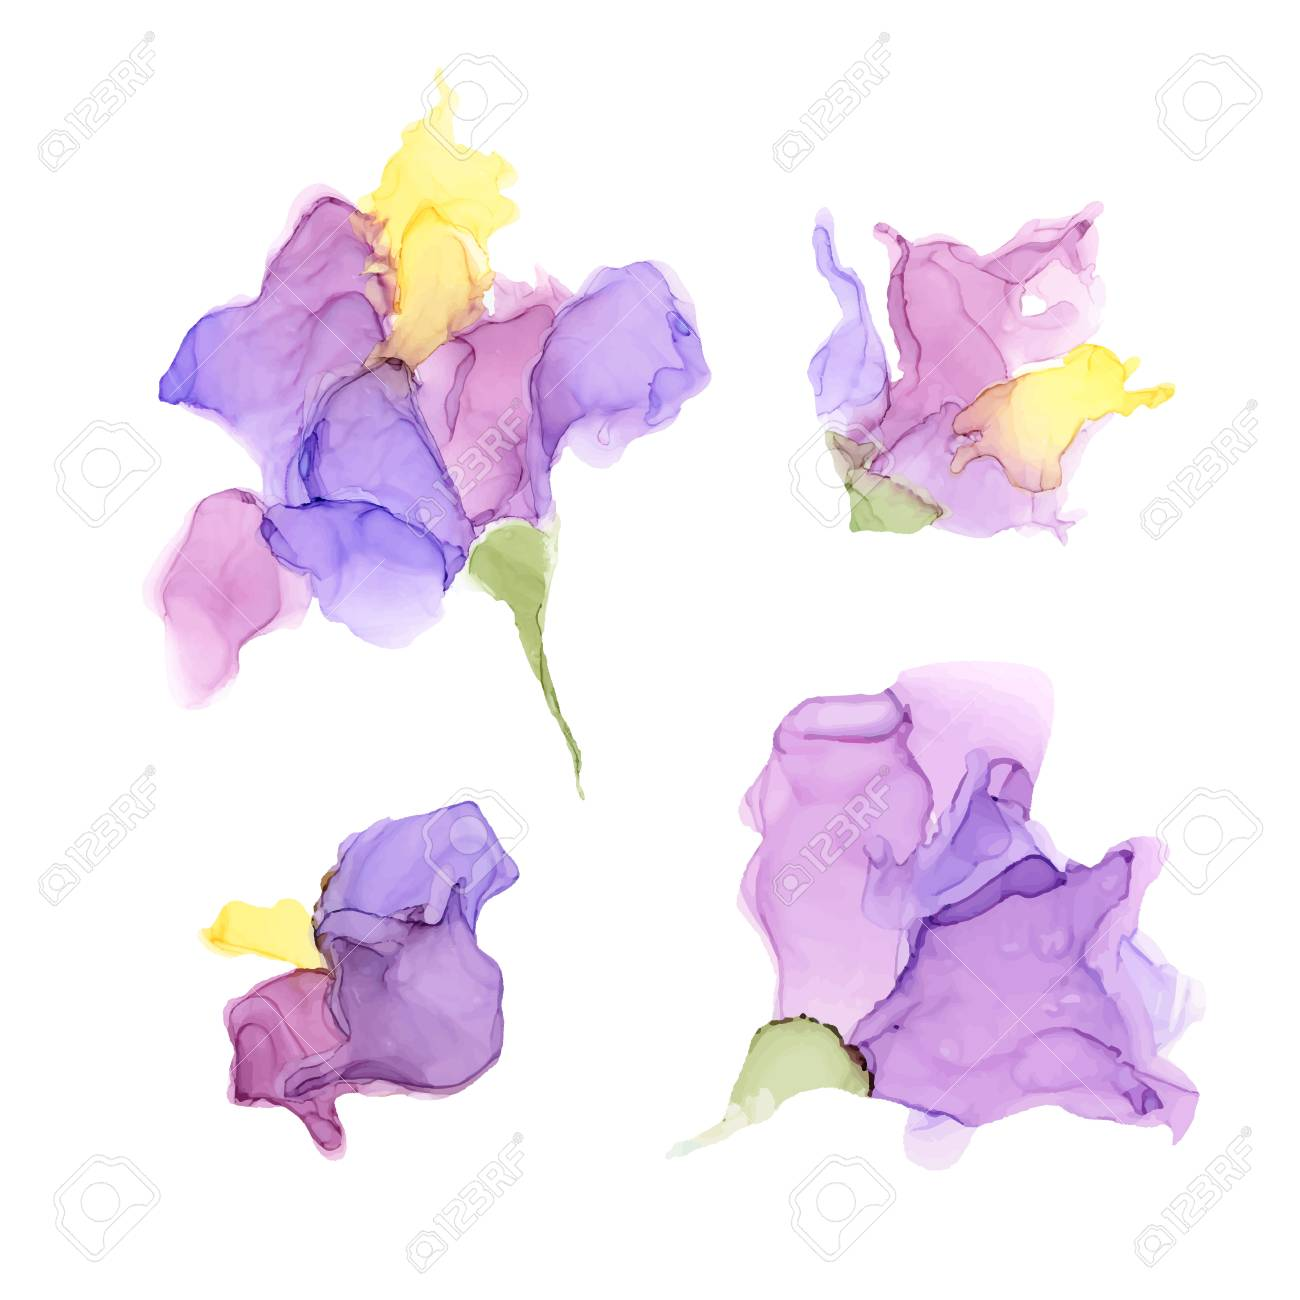 Abstract color alcohol ink flowers isolated on white background . Marble style. Hand painted vector illustration for your design. - 130047519